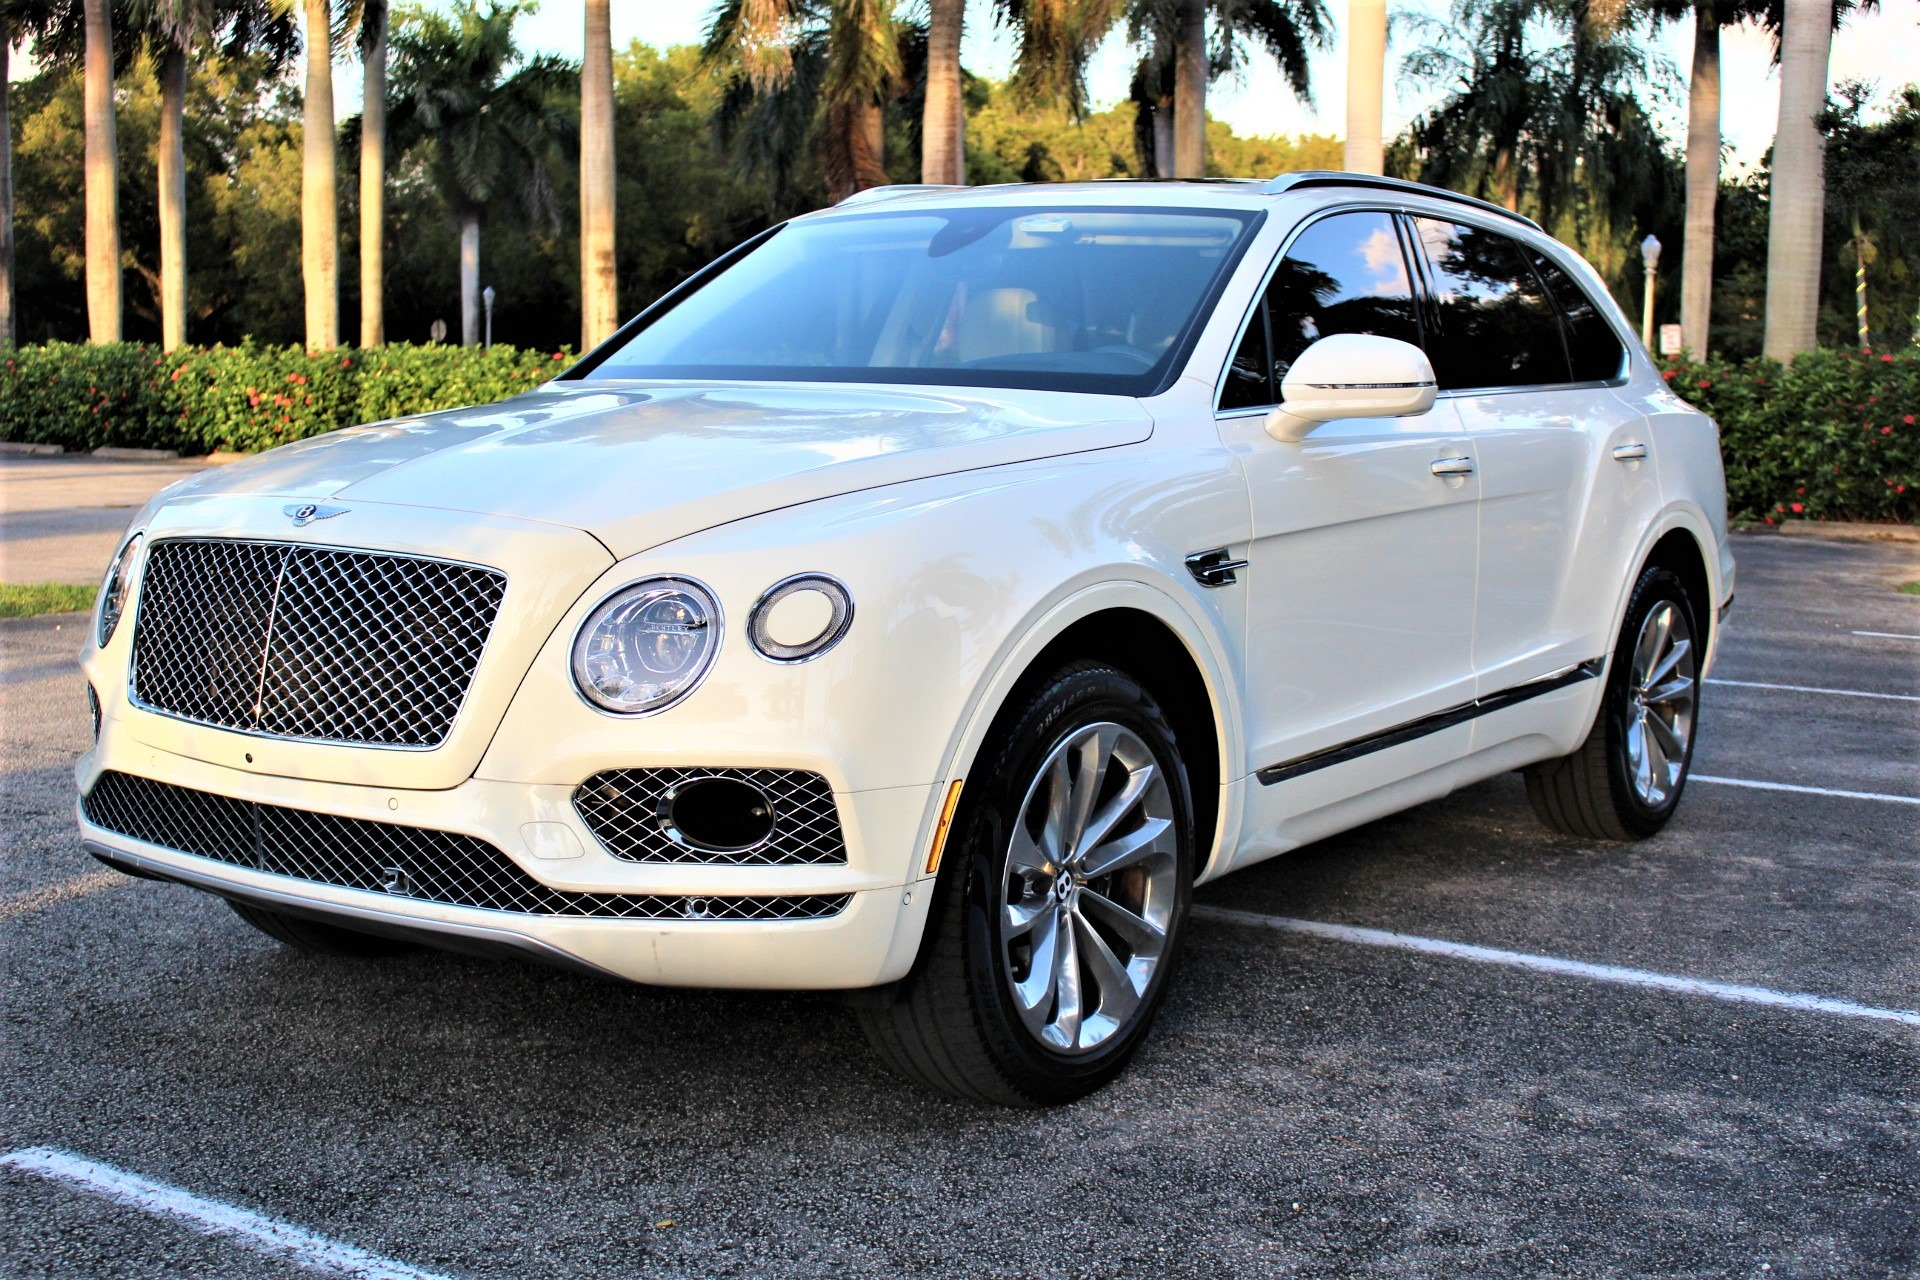 Used 2017 Bentley Bentayga W12 for sale Sold at The Gables Sports Cars in Miami FL 33146 4